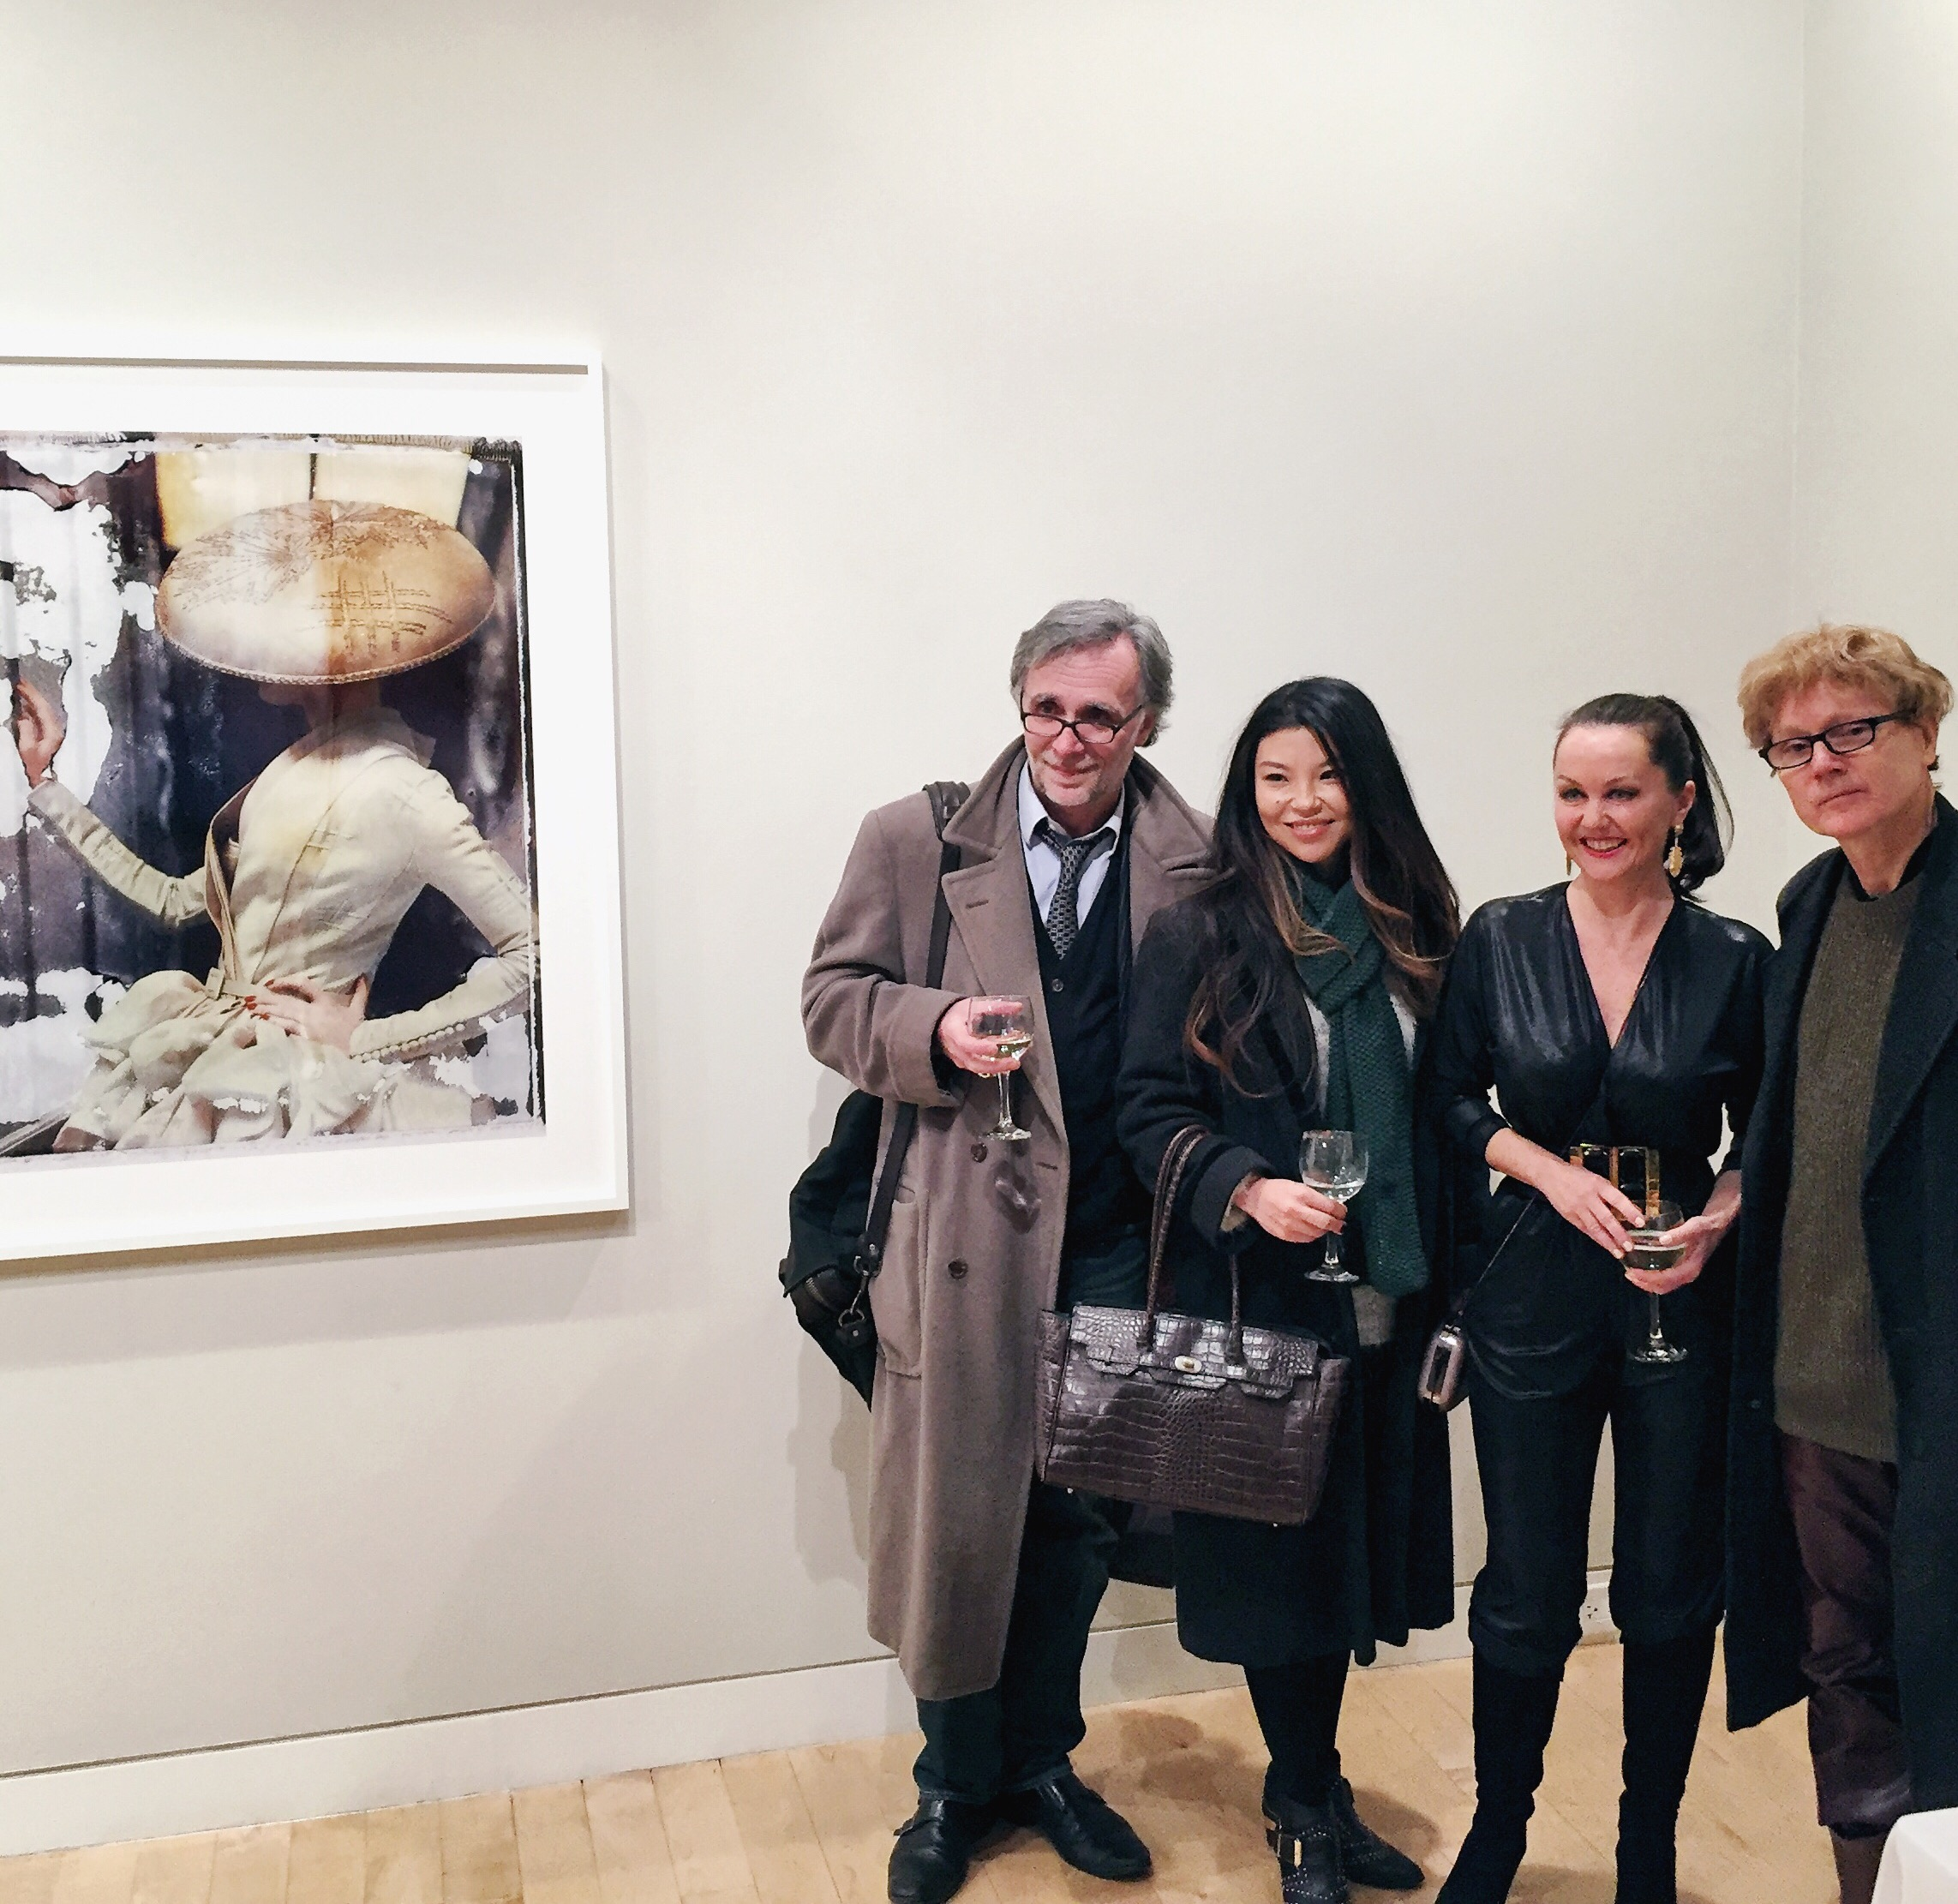 L to R: Gilles Decamps, Suzanne Spiegoski, Cathleen Naundorf, &M. Brendon MacInnis from  in the Art world .